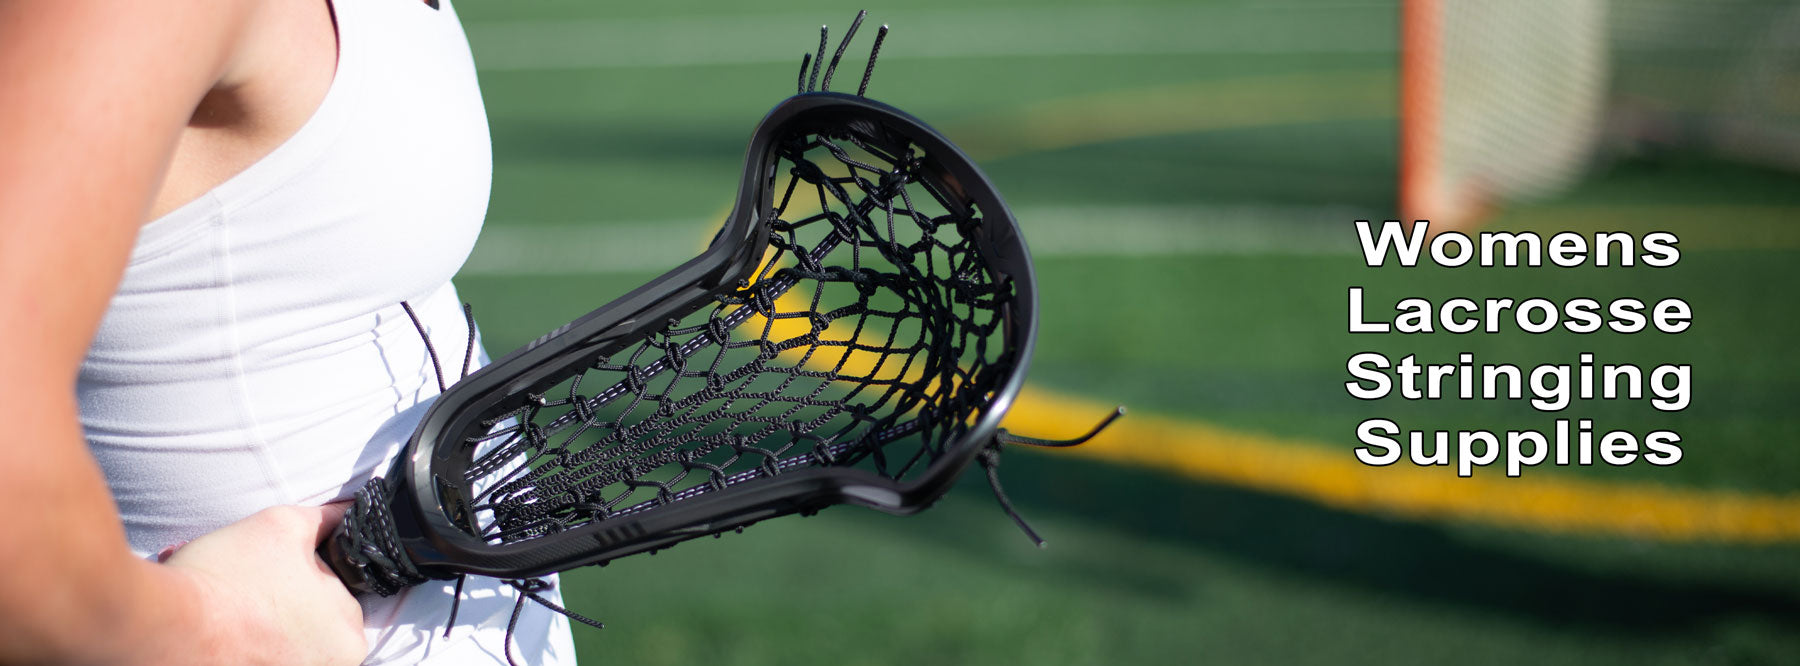 Womens Lacrosse Stringing Supplies from Lacrosse Fanatic